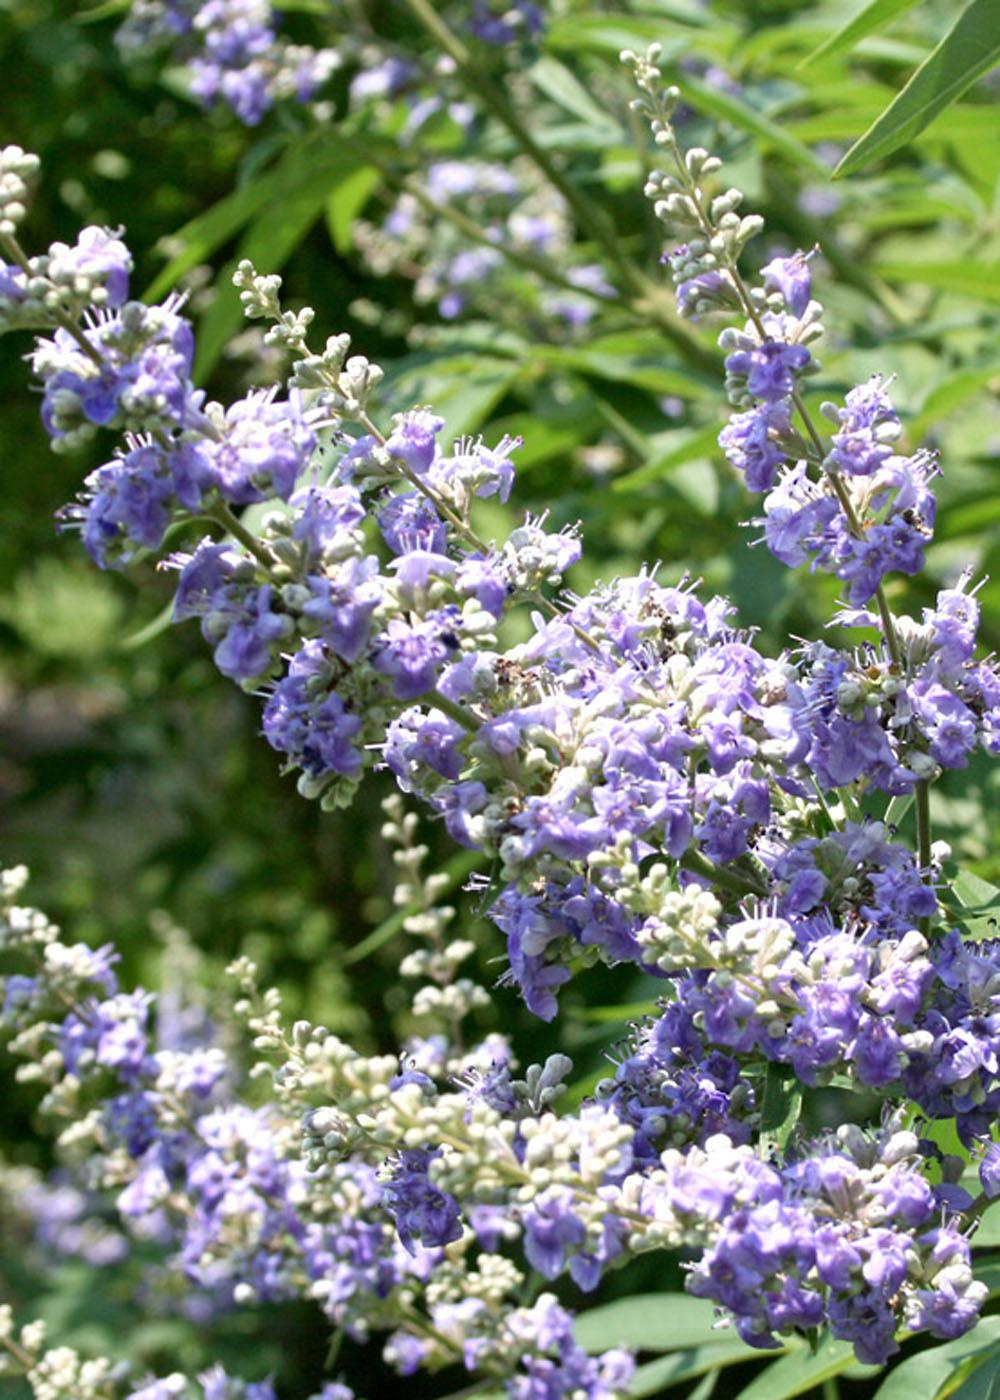 The chaste tree's flower color varies from lavender to lilac to pale violet and the tiny flowers bloom in small clusters that come together to form larger arrangements. The tree is seen throughout Jackson County and in other parts of the Mississippi Gulf Coast. (Photo by MSU Extension Service/Gary Bachman)